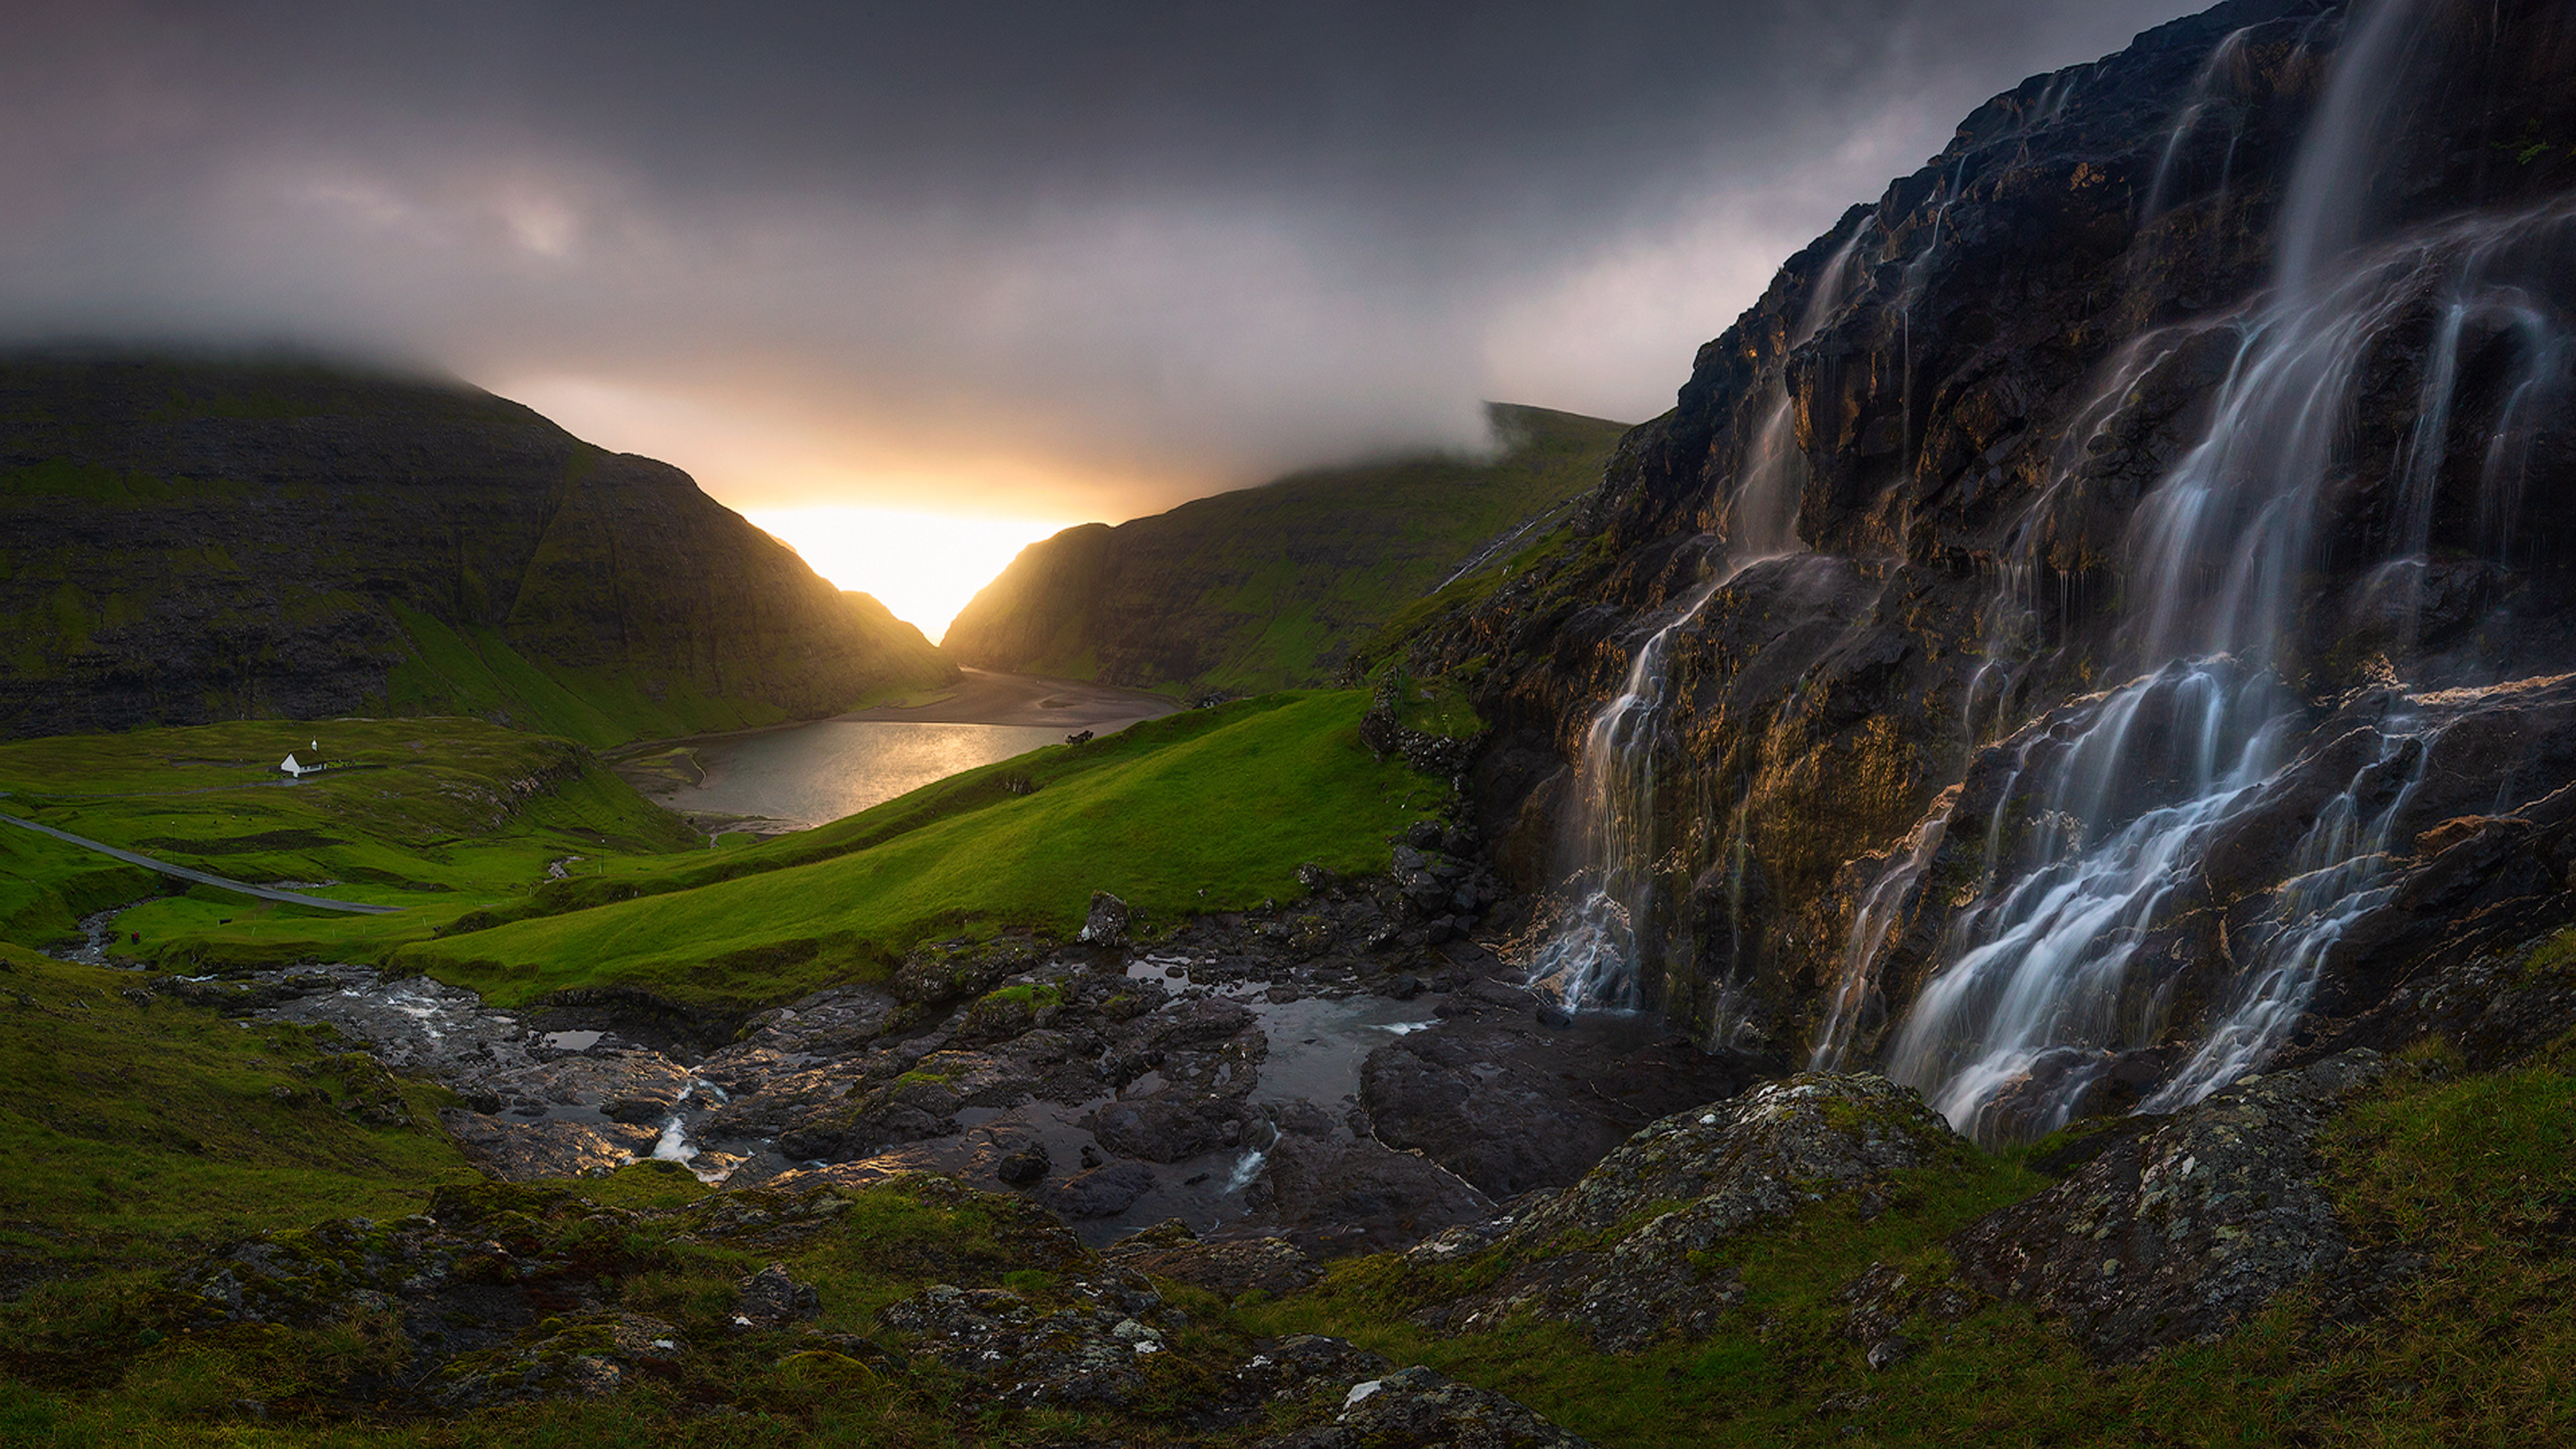 Iphone 4 Wallpaper Resolution Faroe Islands Waterfall At Sunset Island Country Panorama